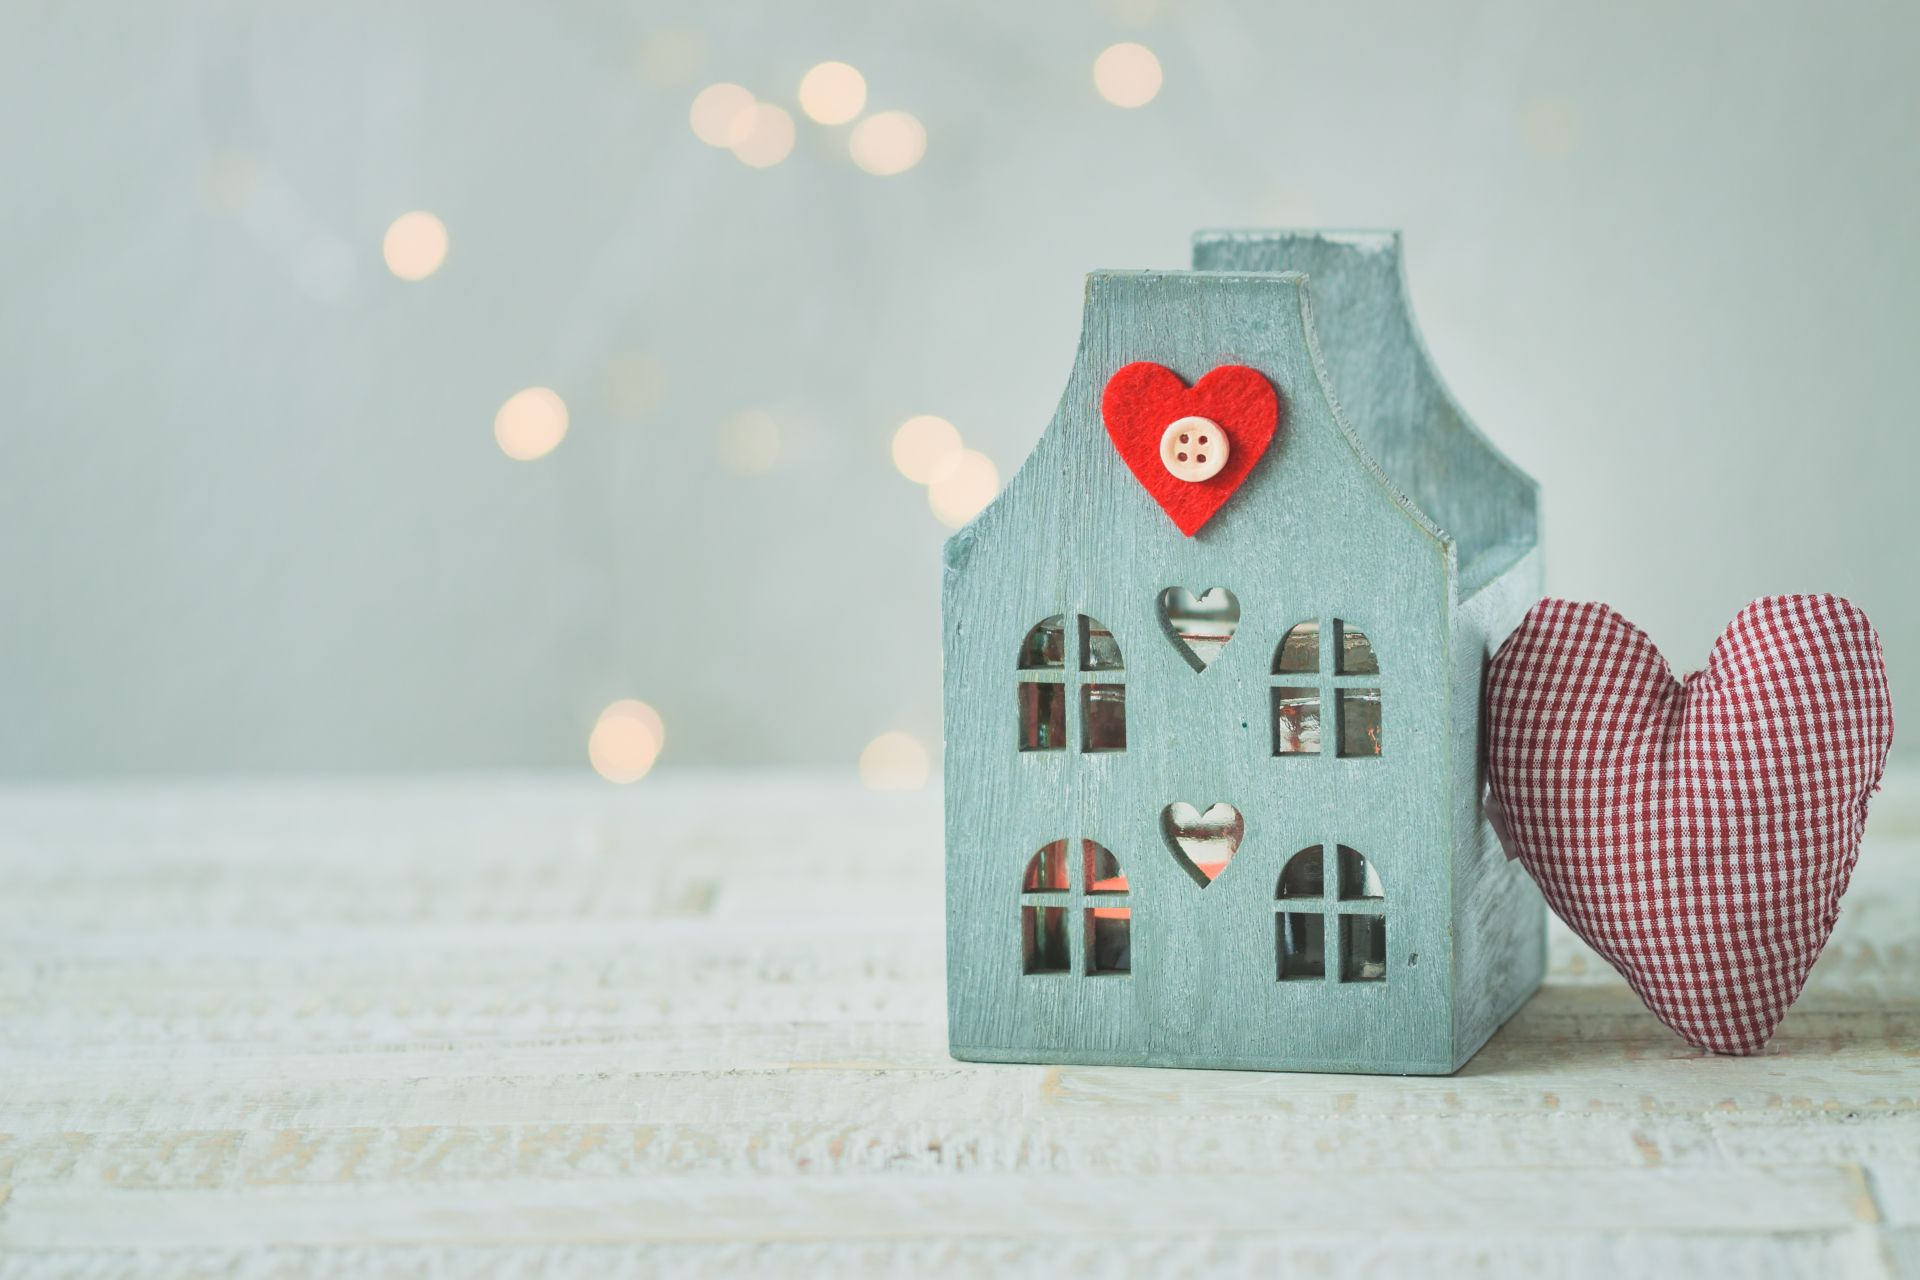 5 easy ways to show your home some love!